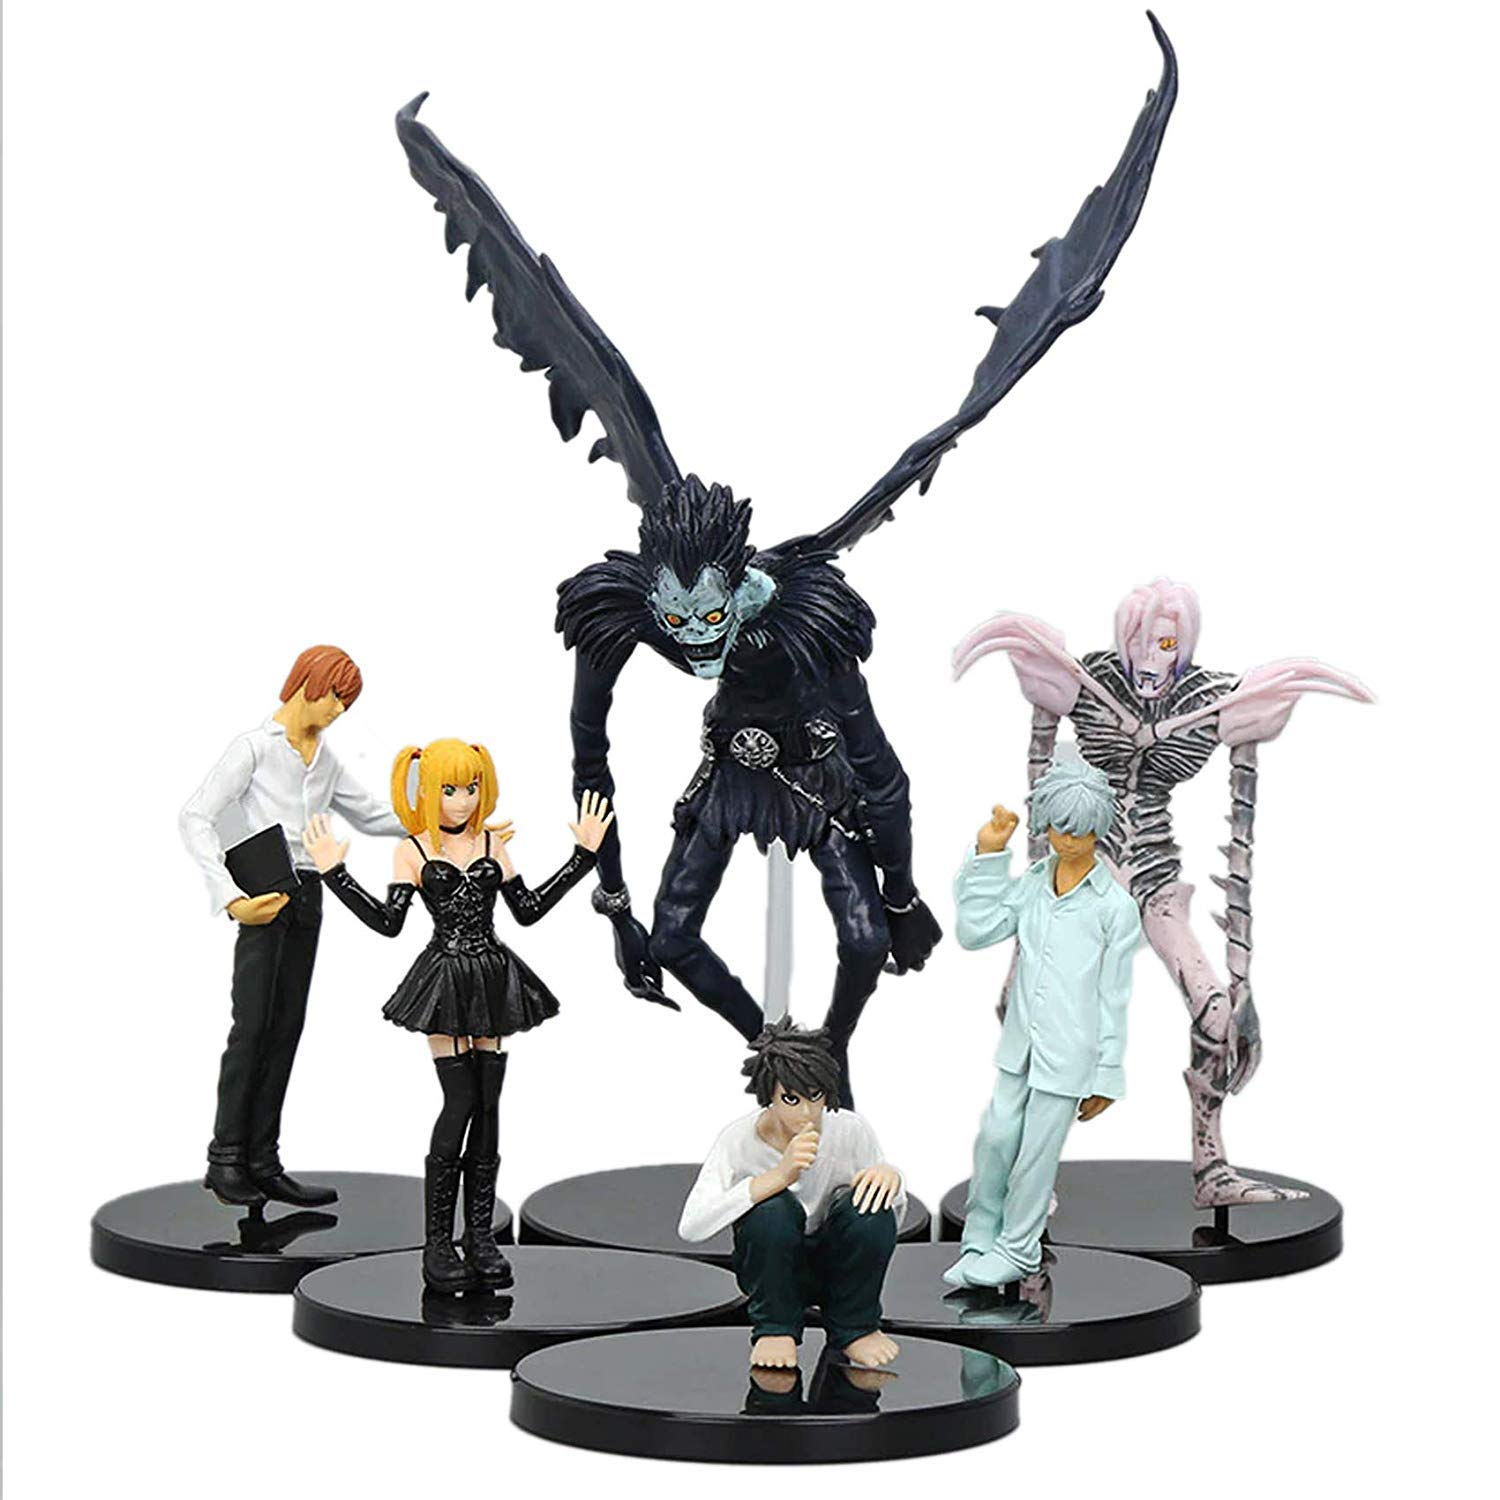 hhh Anime - Death Note - Set of Characters L, Ryuk, Light, Rem, Misa, and N Action Figures Collection and Model Toys - 6pcs by hhh